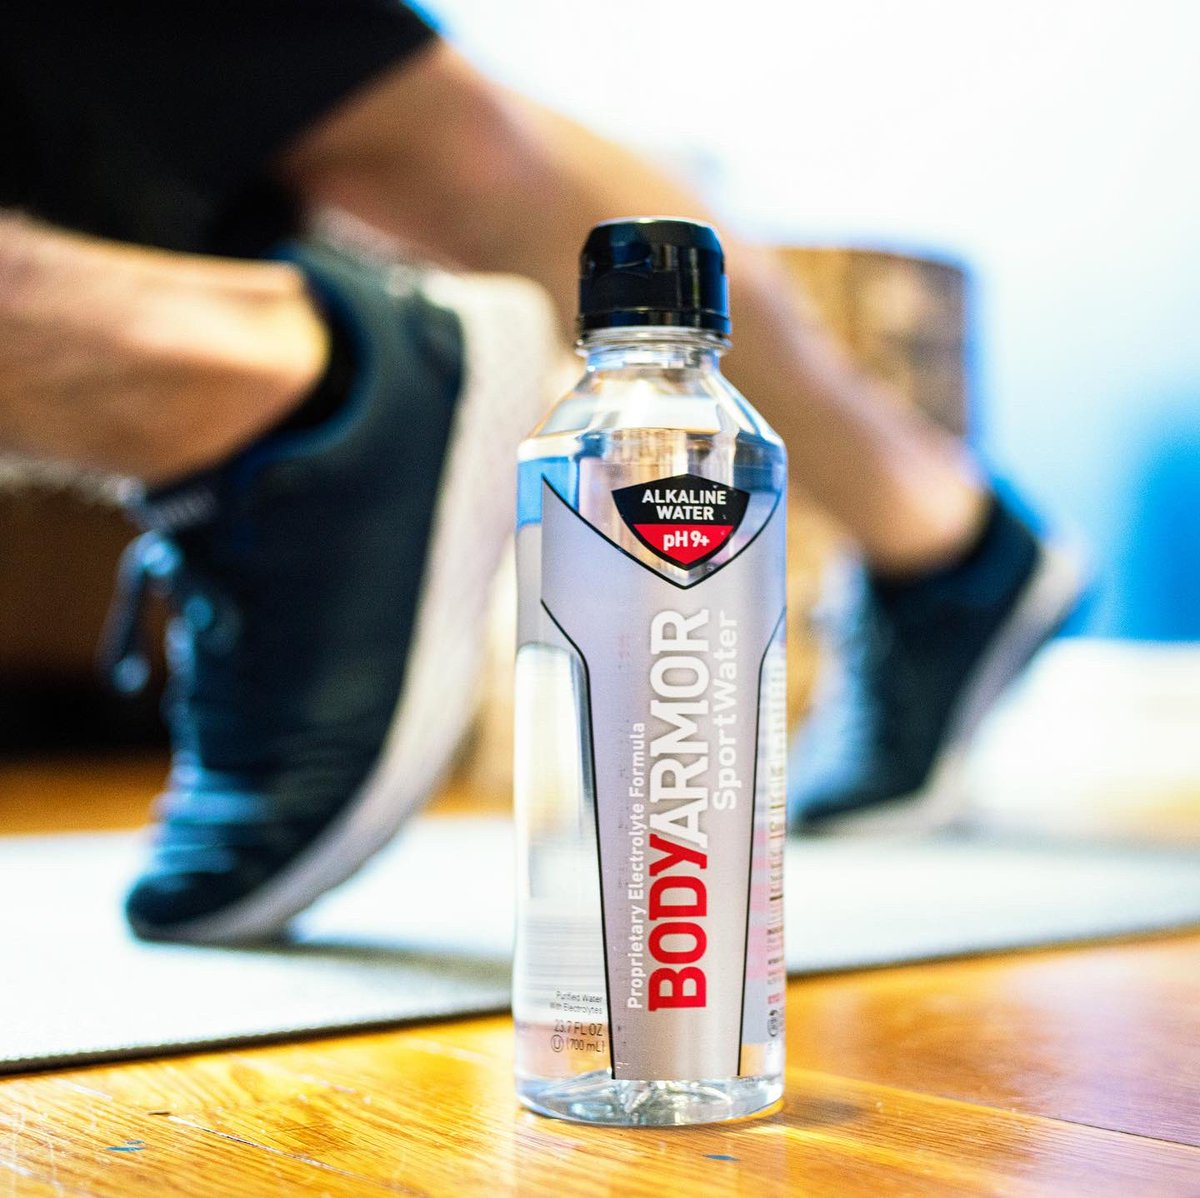 #COMMIT2FIT DEAL 👀  👉 Spend $20 on any BODYARMOR product at participating retailers and get a $10 eGift card towards one of your favorite fitness brands 💪💪   How to redeem: